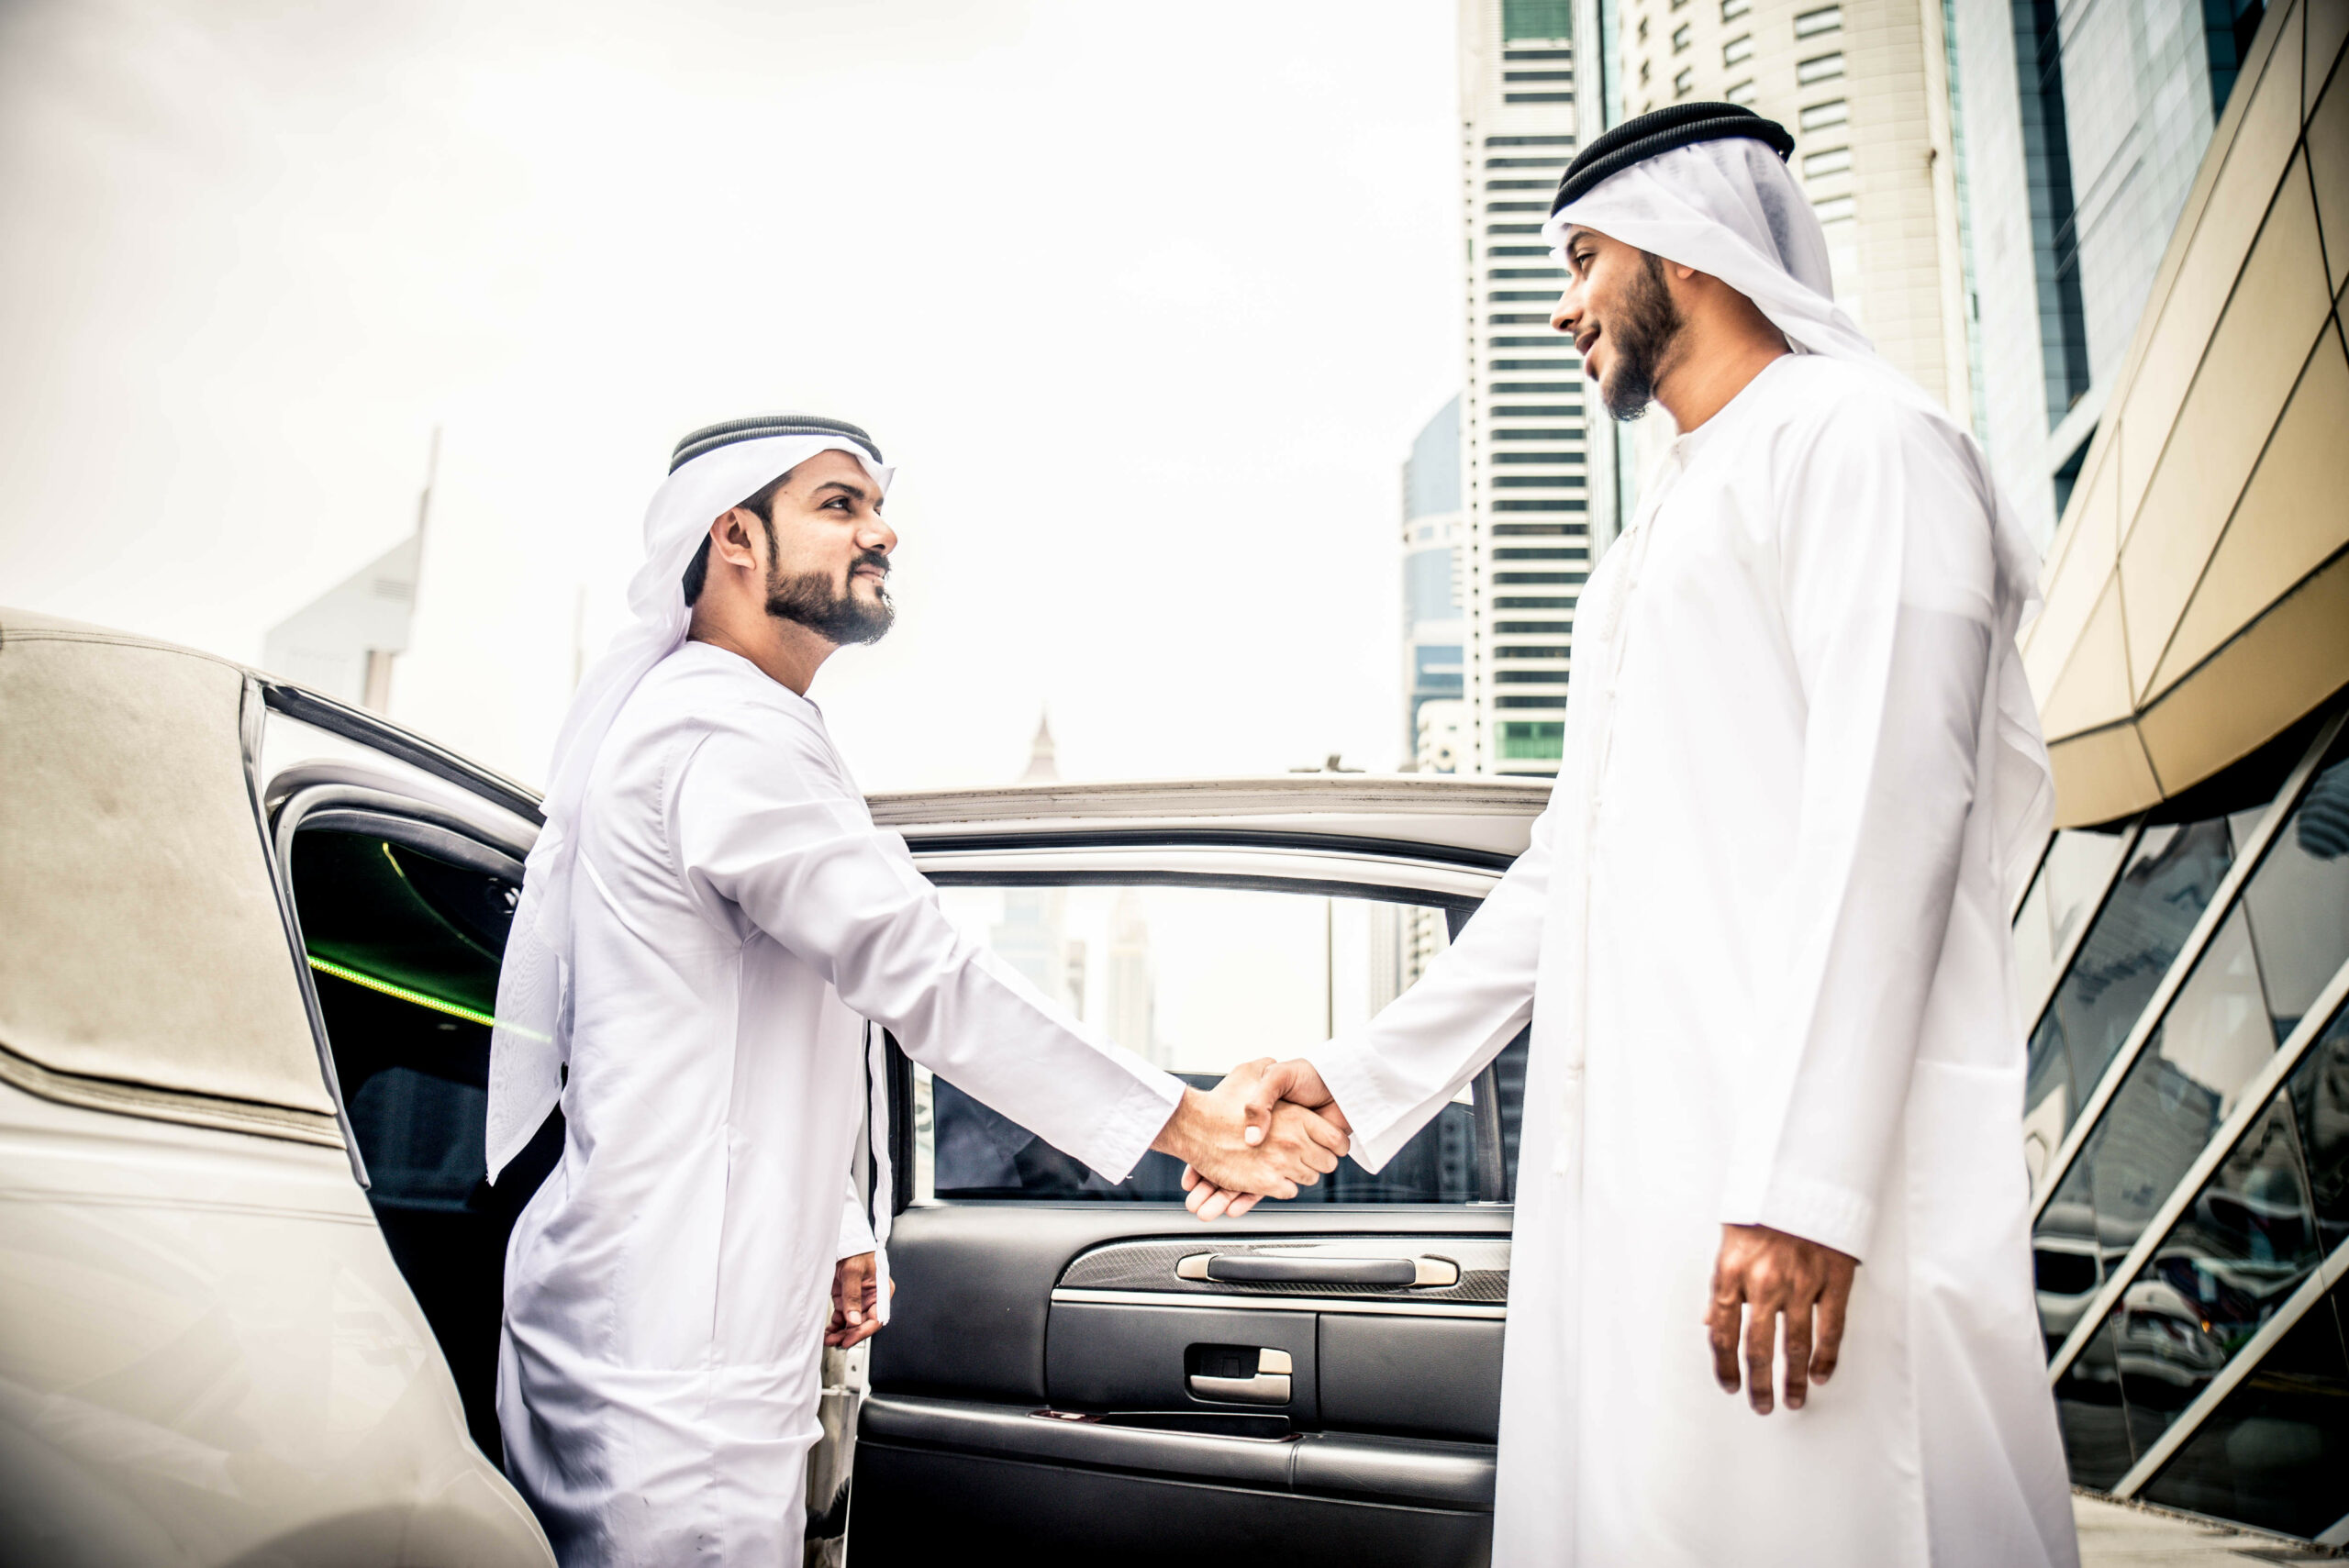 Arab culture has so many Arabic rules for body language and Arab etiquette. Want to know about UAE and their communication? Click here for more.